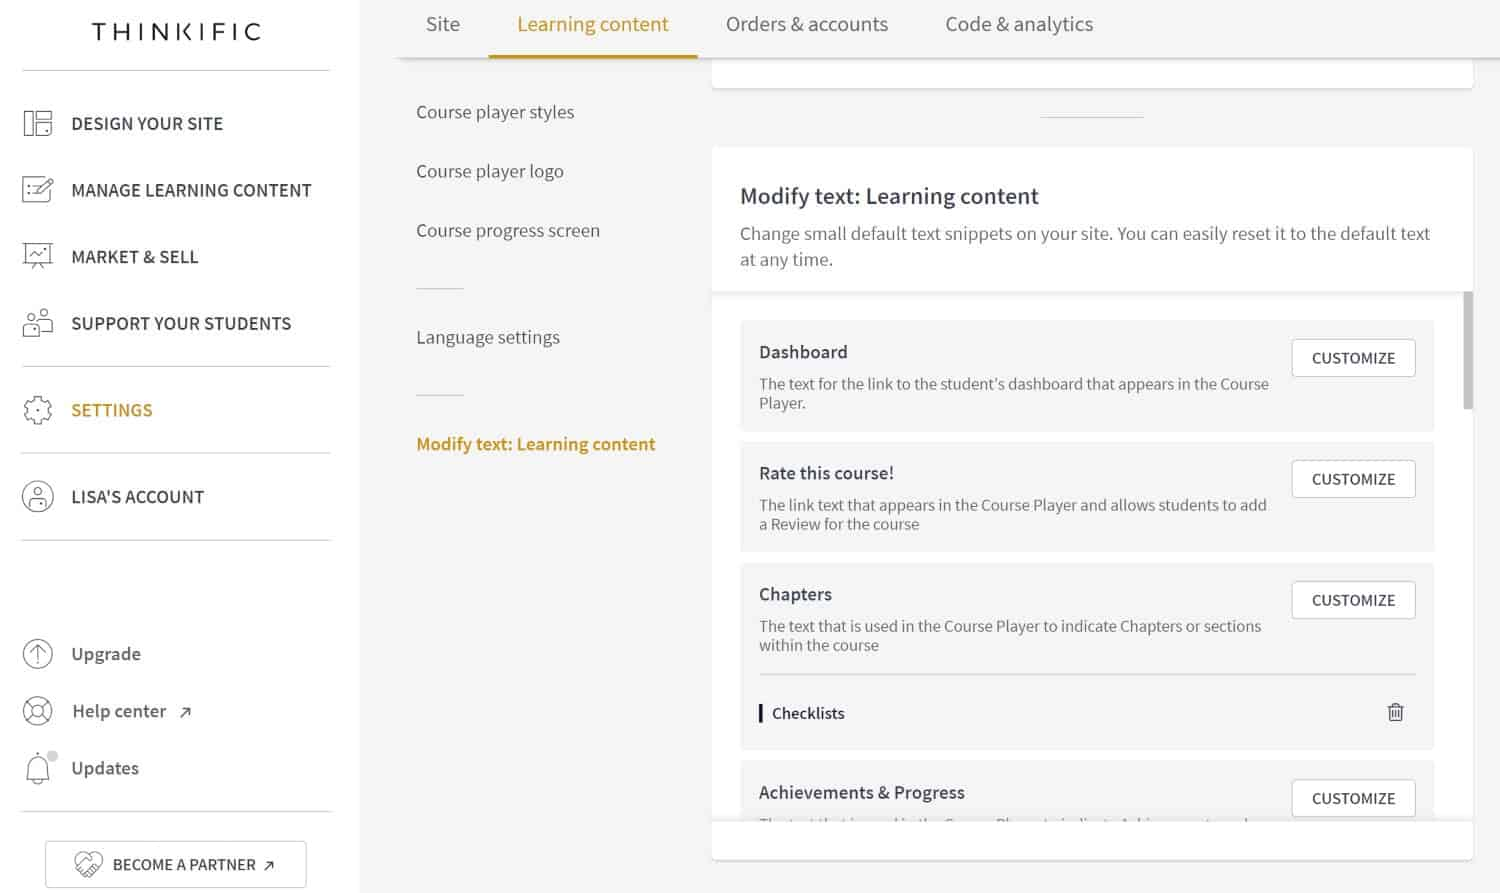 Thinkific modify text, learning content screenshot